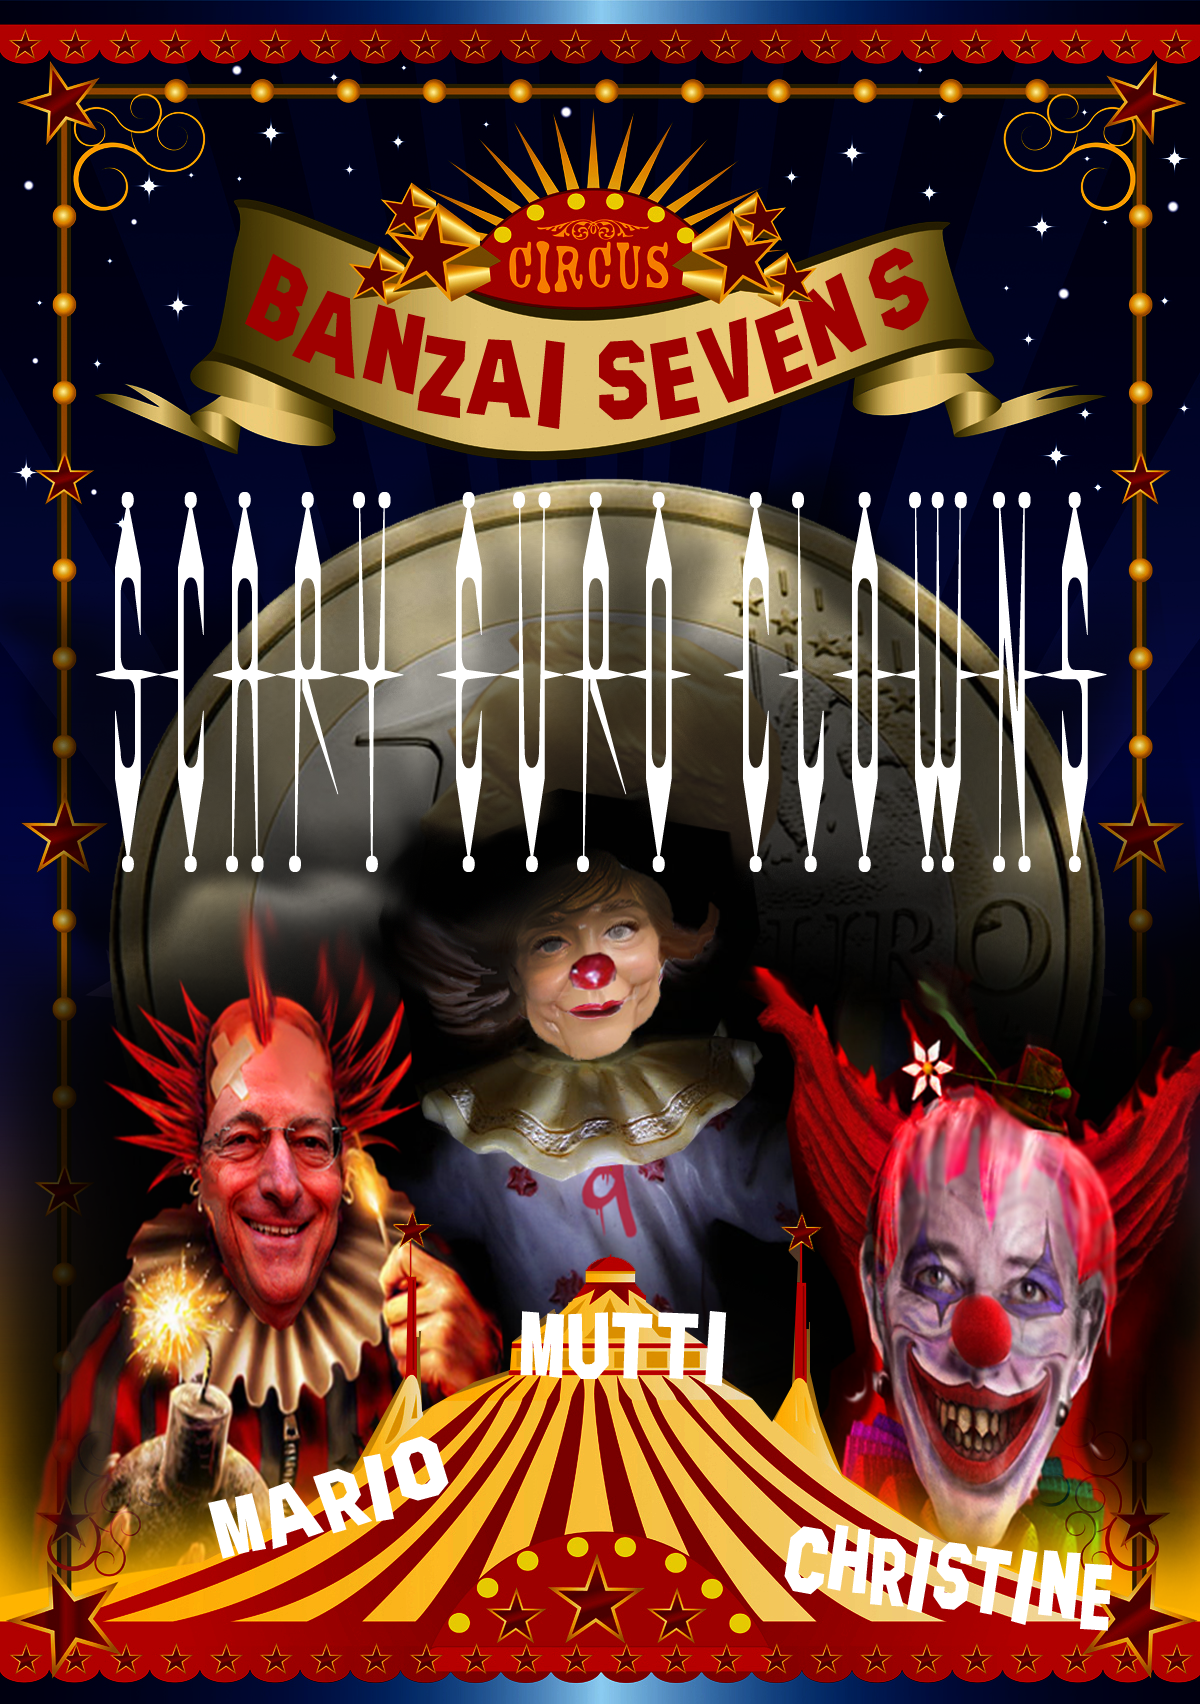 SCARY EURO CLOWN POSTER